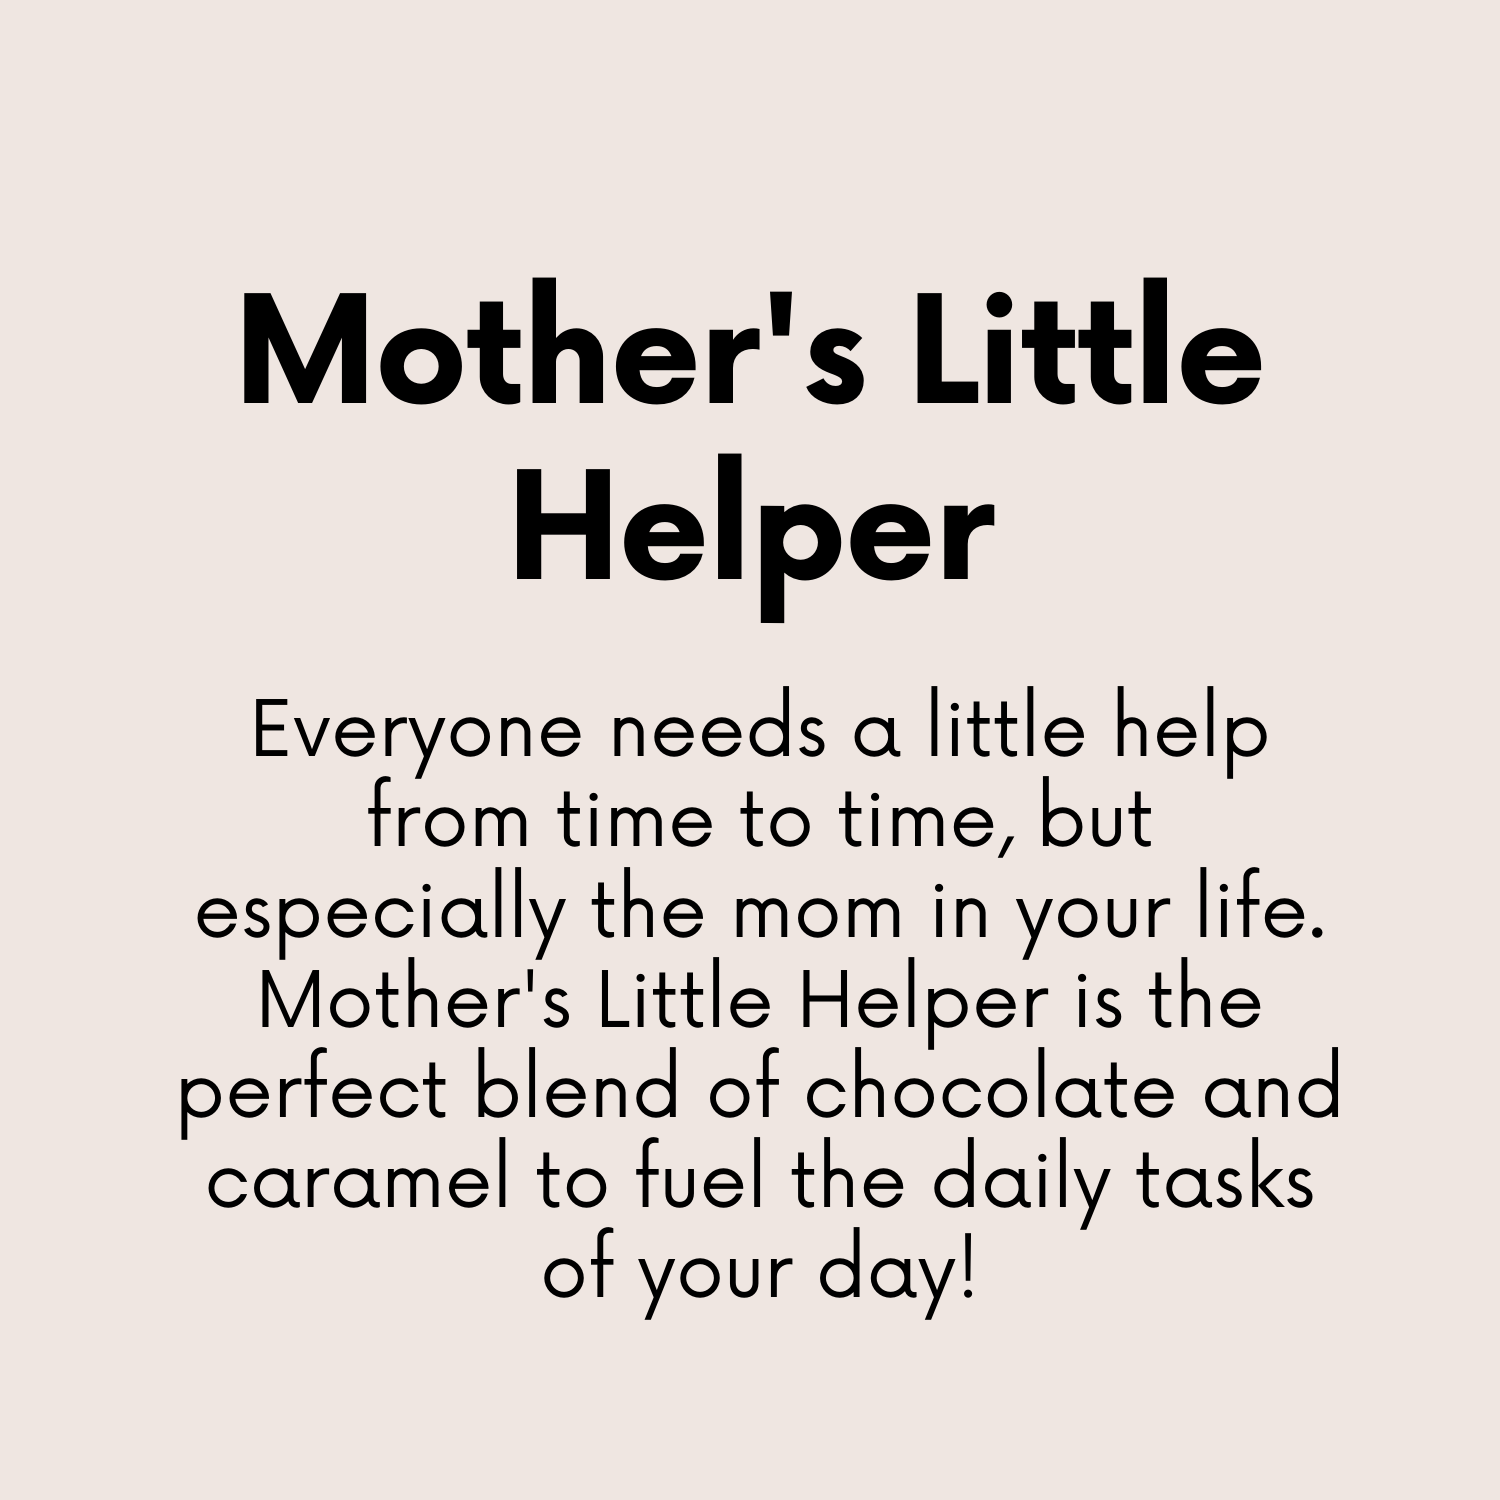 Mother's Little Helper